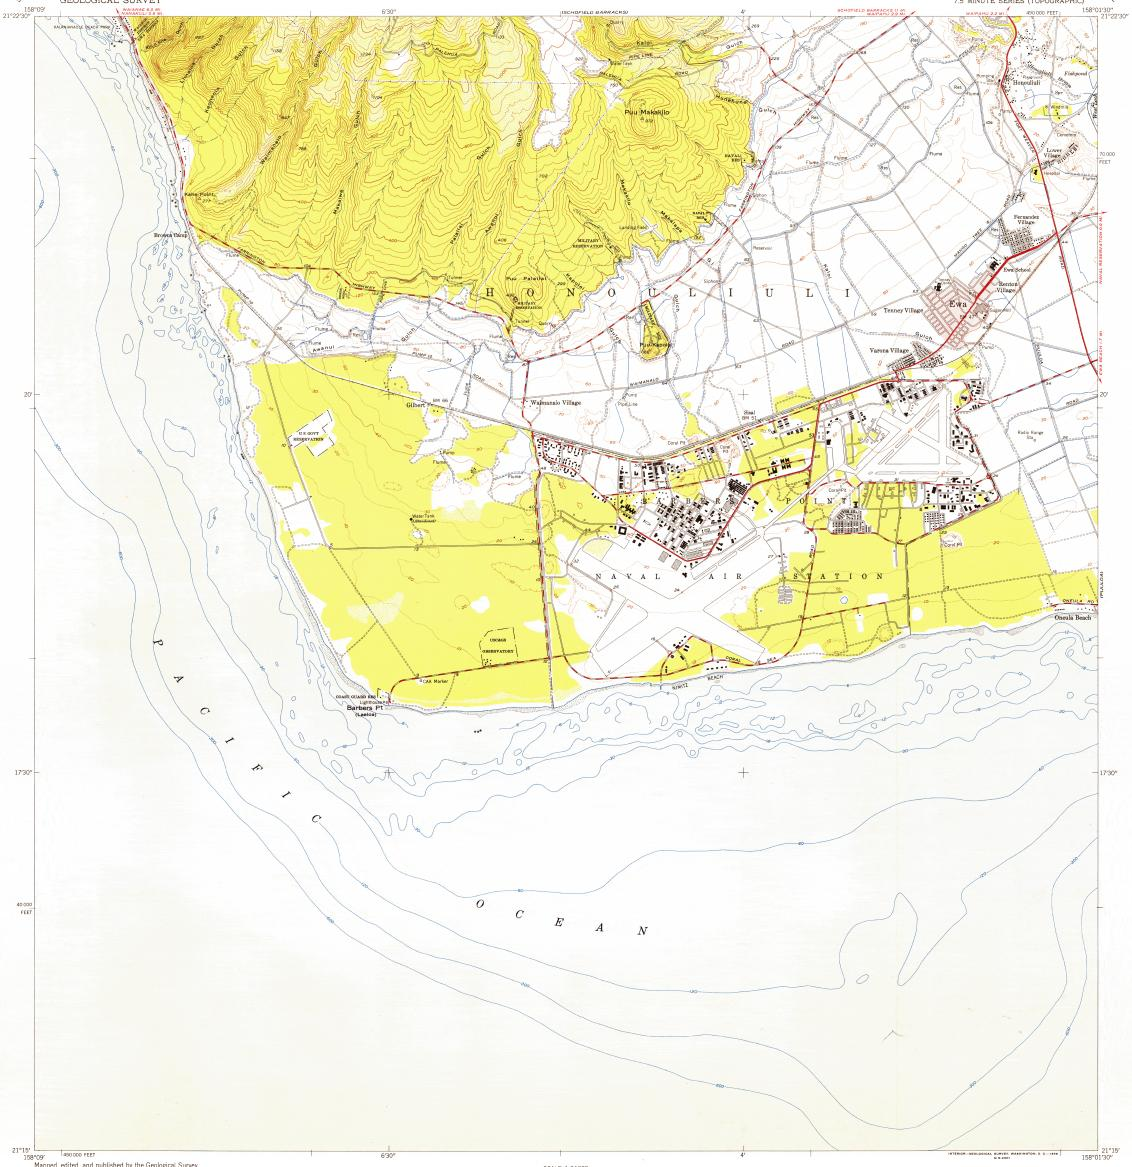 Download topographic map in area of Makakilo City Barbers Point